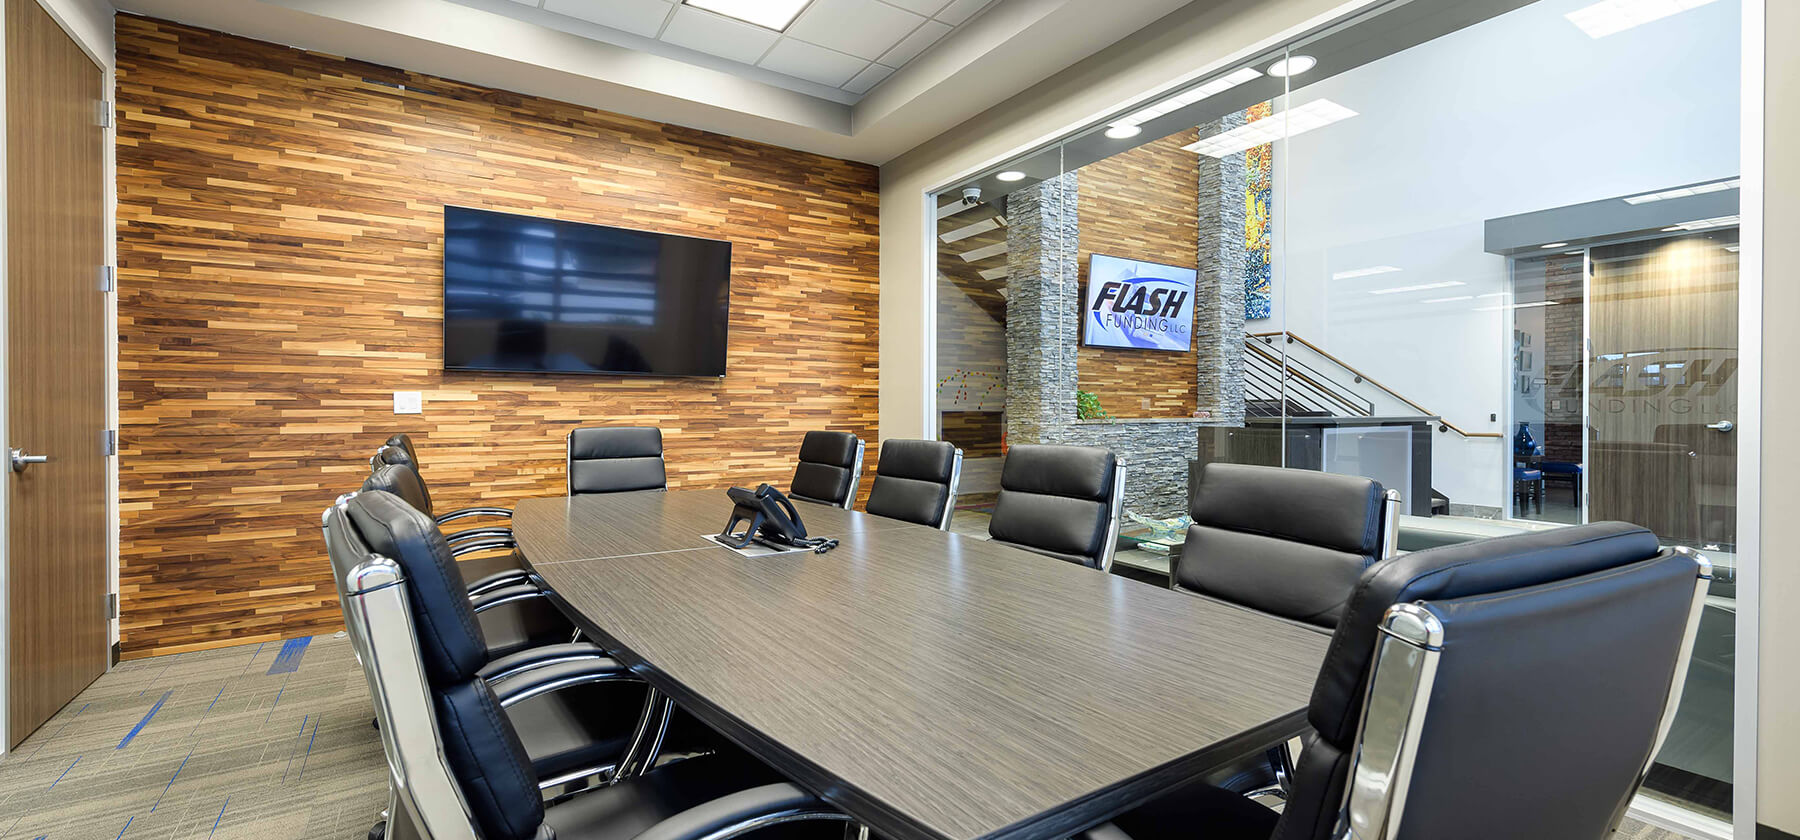 Flash Funding Office